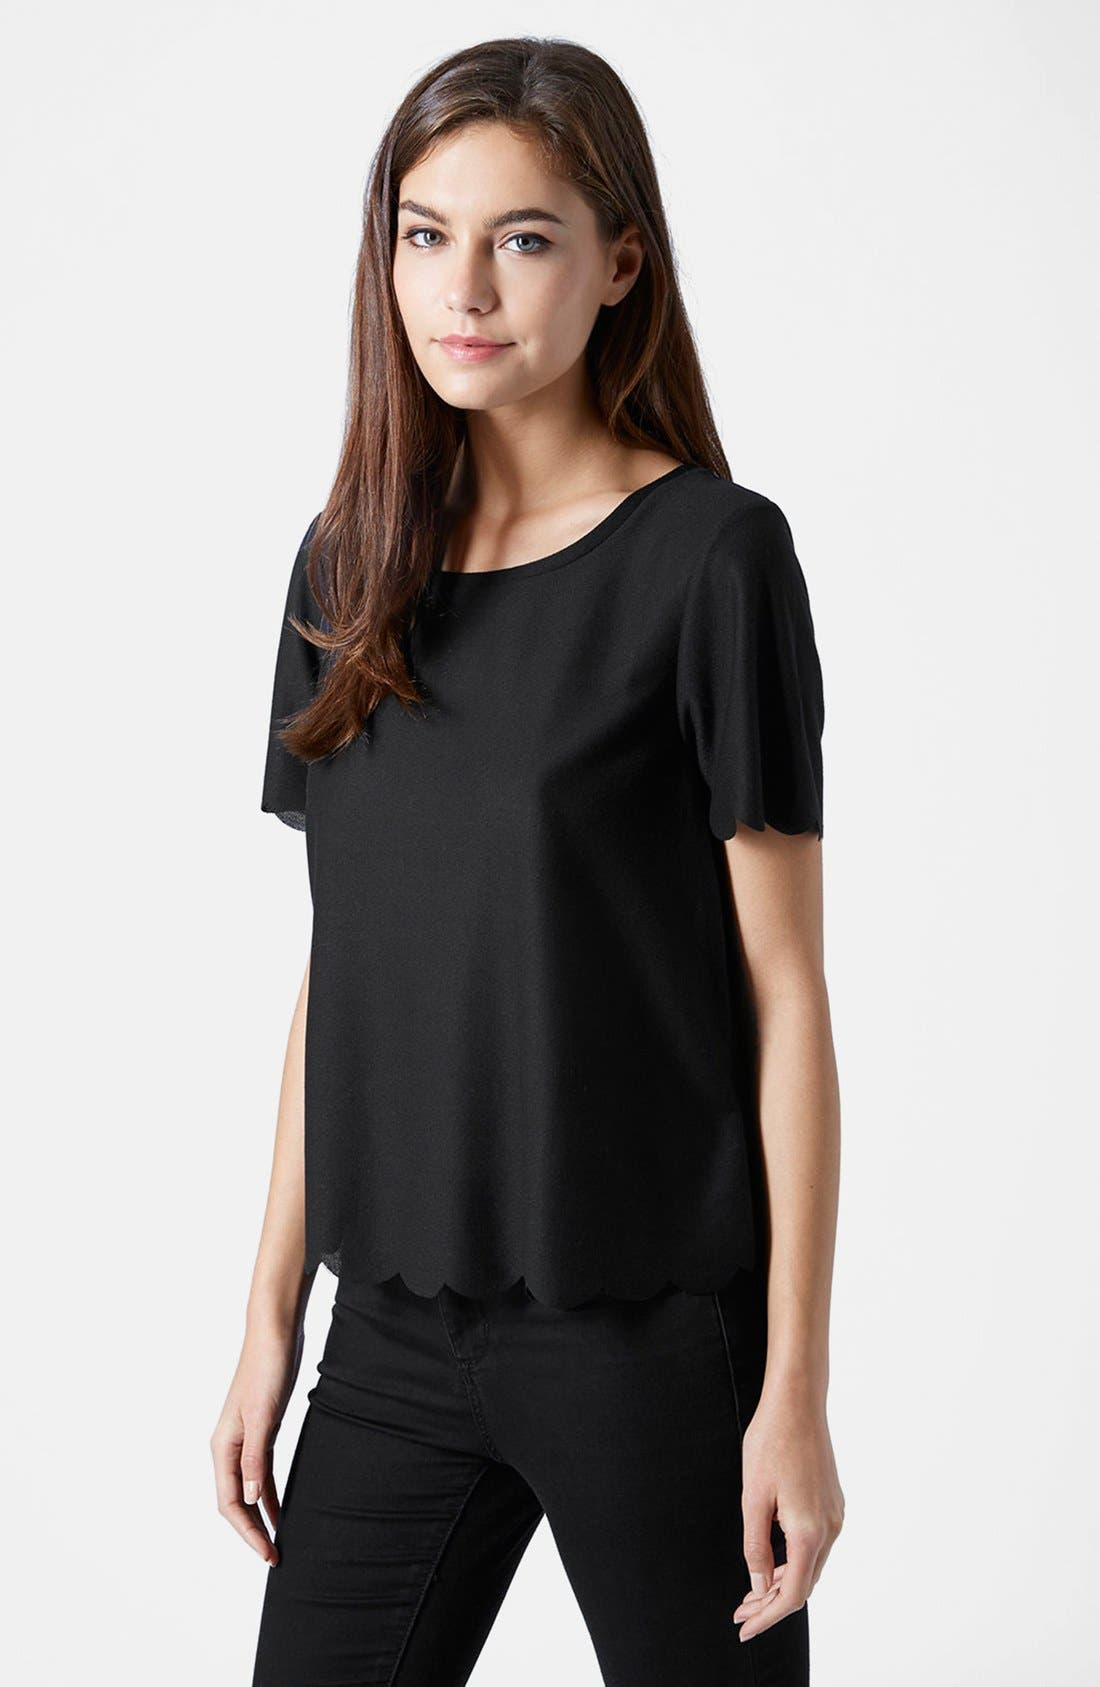 TOPSHOP, Scallop Frill Tee, Main thumbnail 1, color, 001